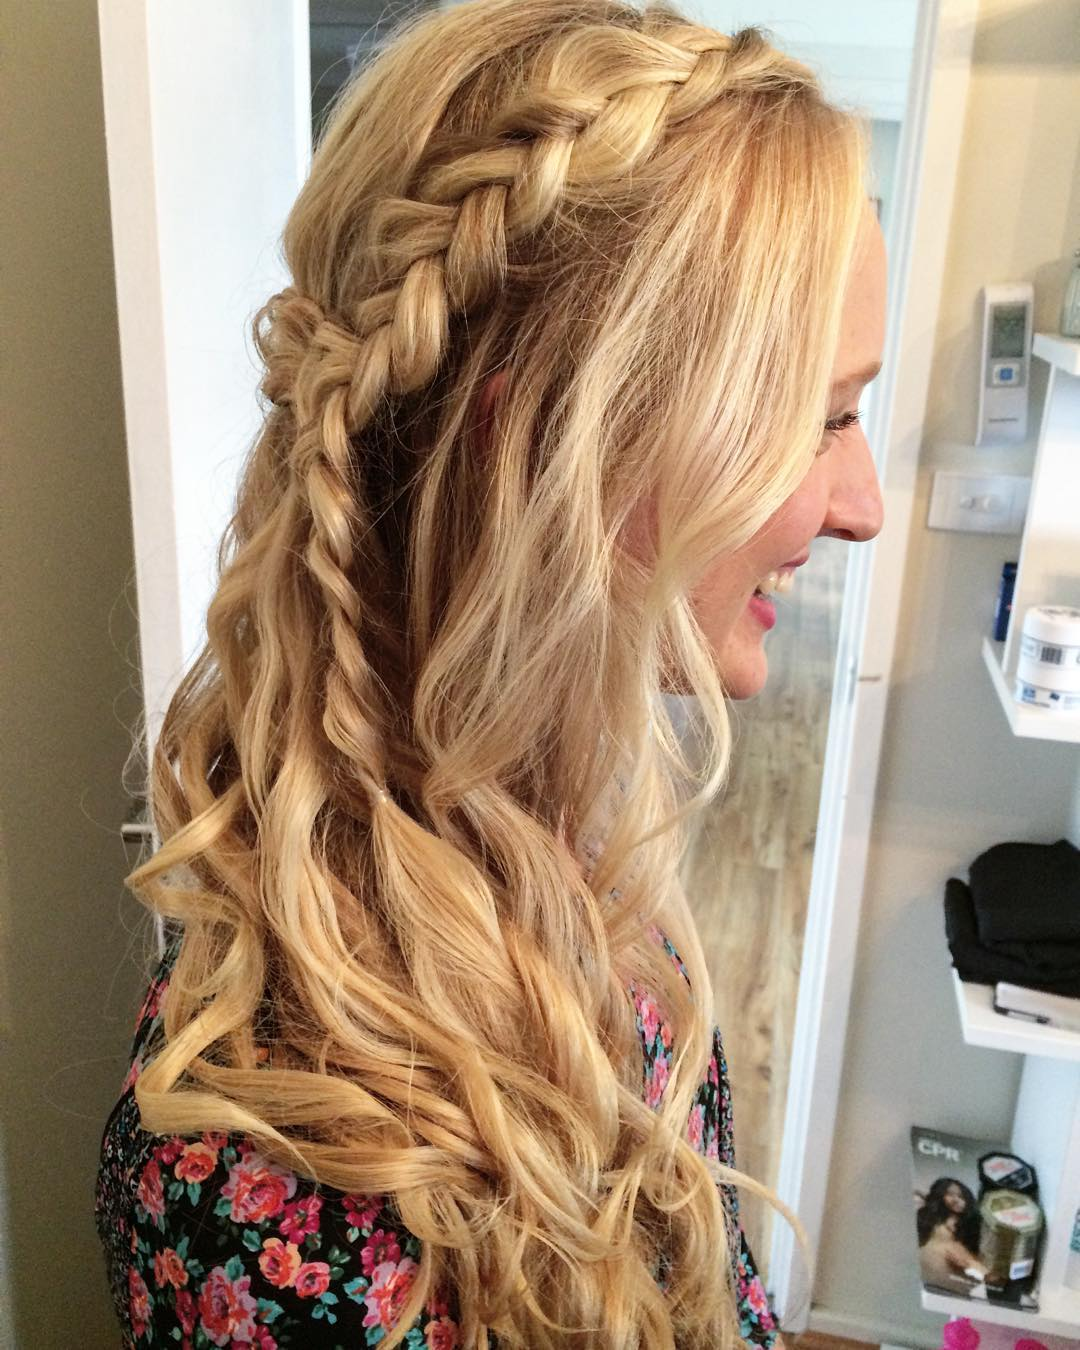 26+Awesome Braided Hairstyle For Girls